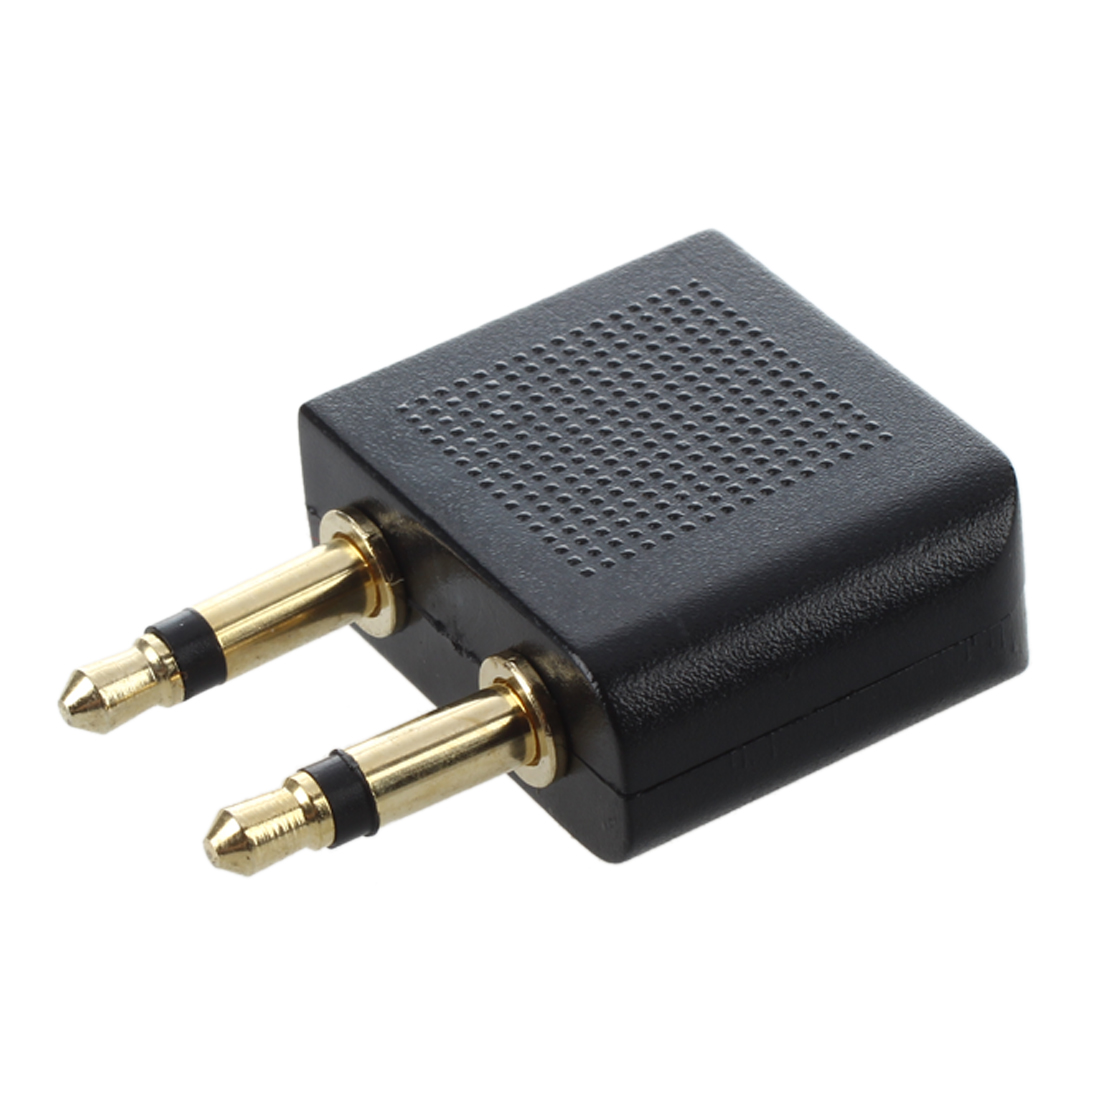 3.5 Mm X 3,5 Mm Aircraft Airline Travel Headphone Jack